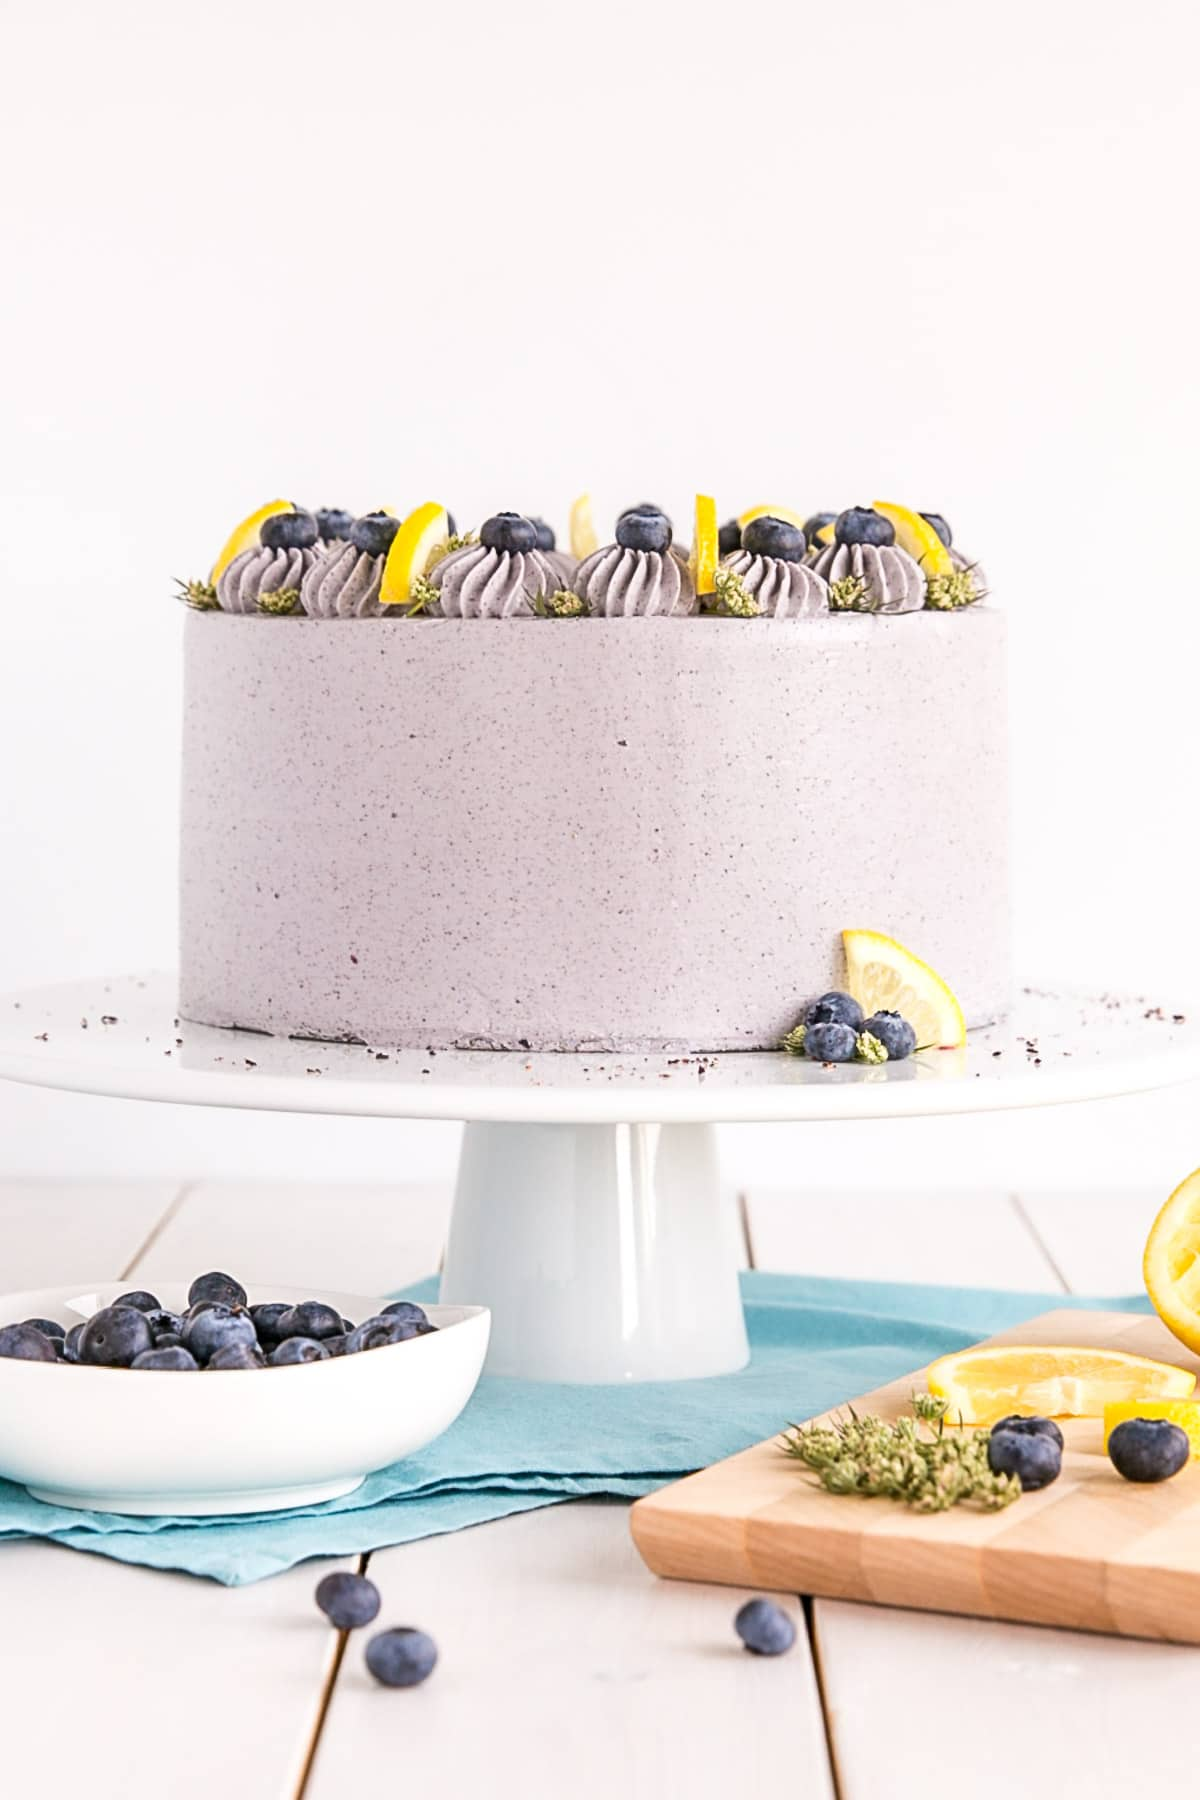 Cake on a white cake stand with a blue cloth underneath and a bowl of blueberries on the side.